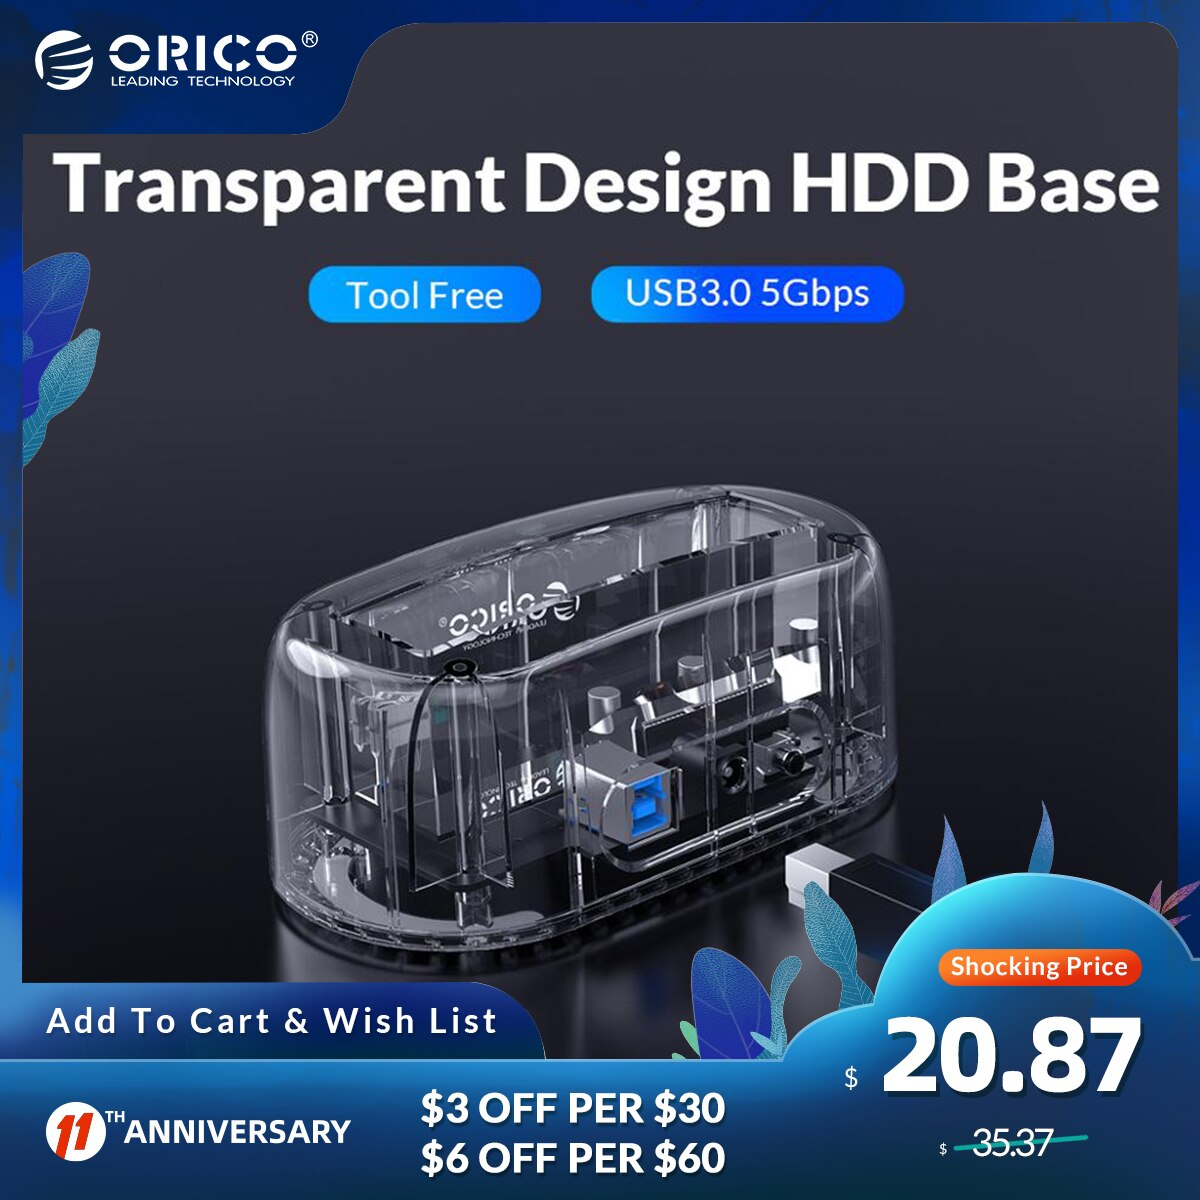 ORICO HDD Enclosure 3.5 Transparent USB 3 to SATA3.0 6Gbps HDD Docking Station UASP 16TB Drives for Notebook Desktop PC(6139U3)